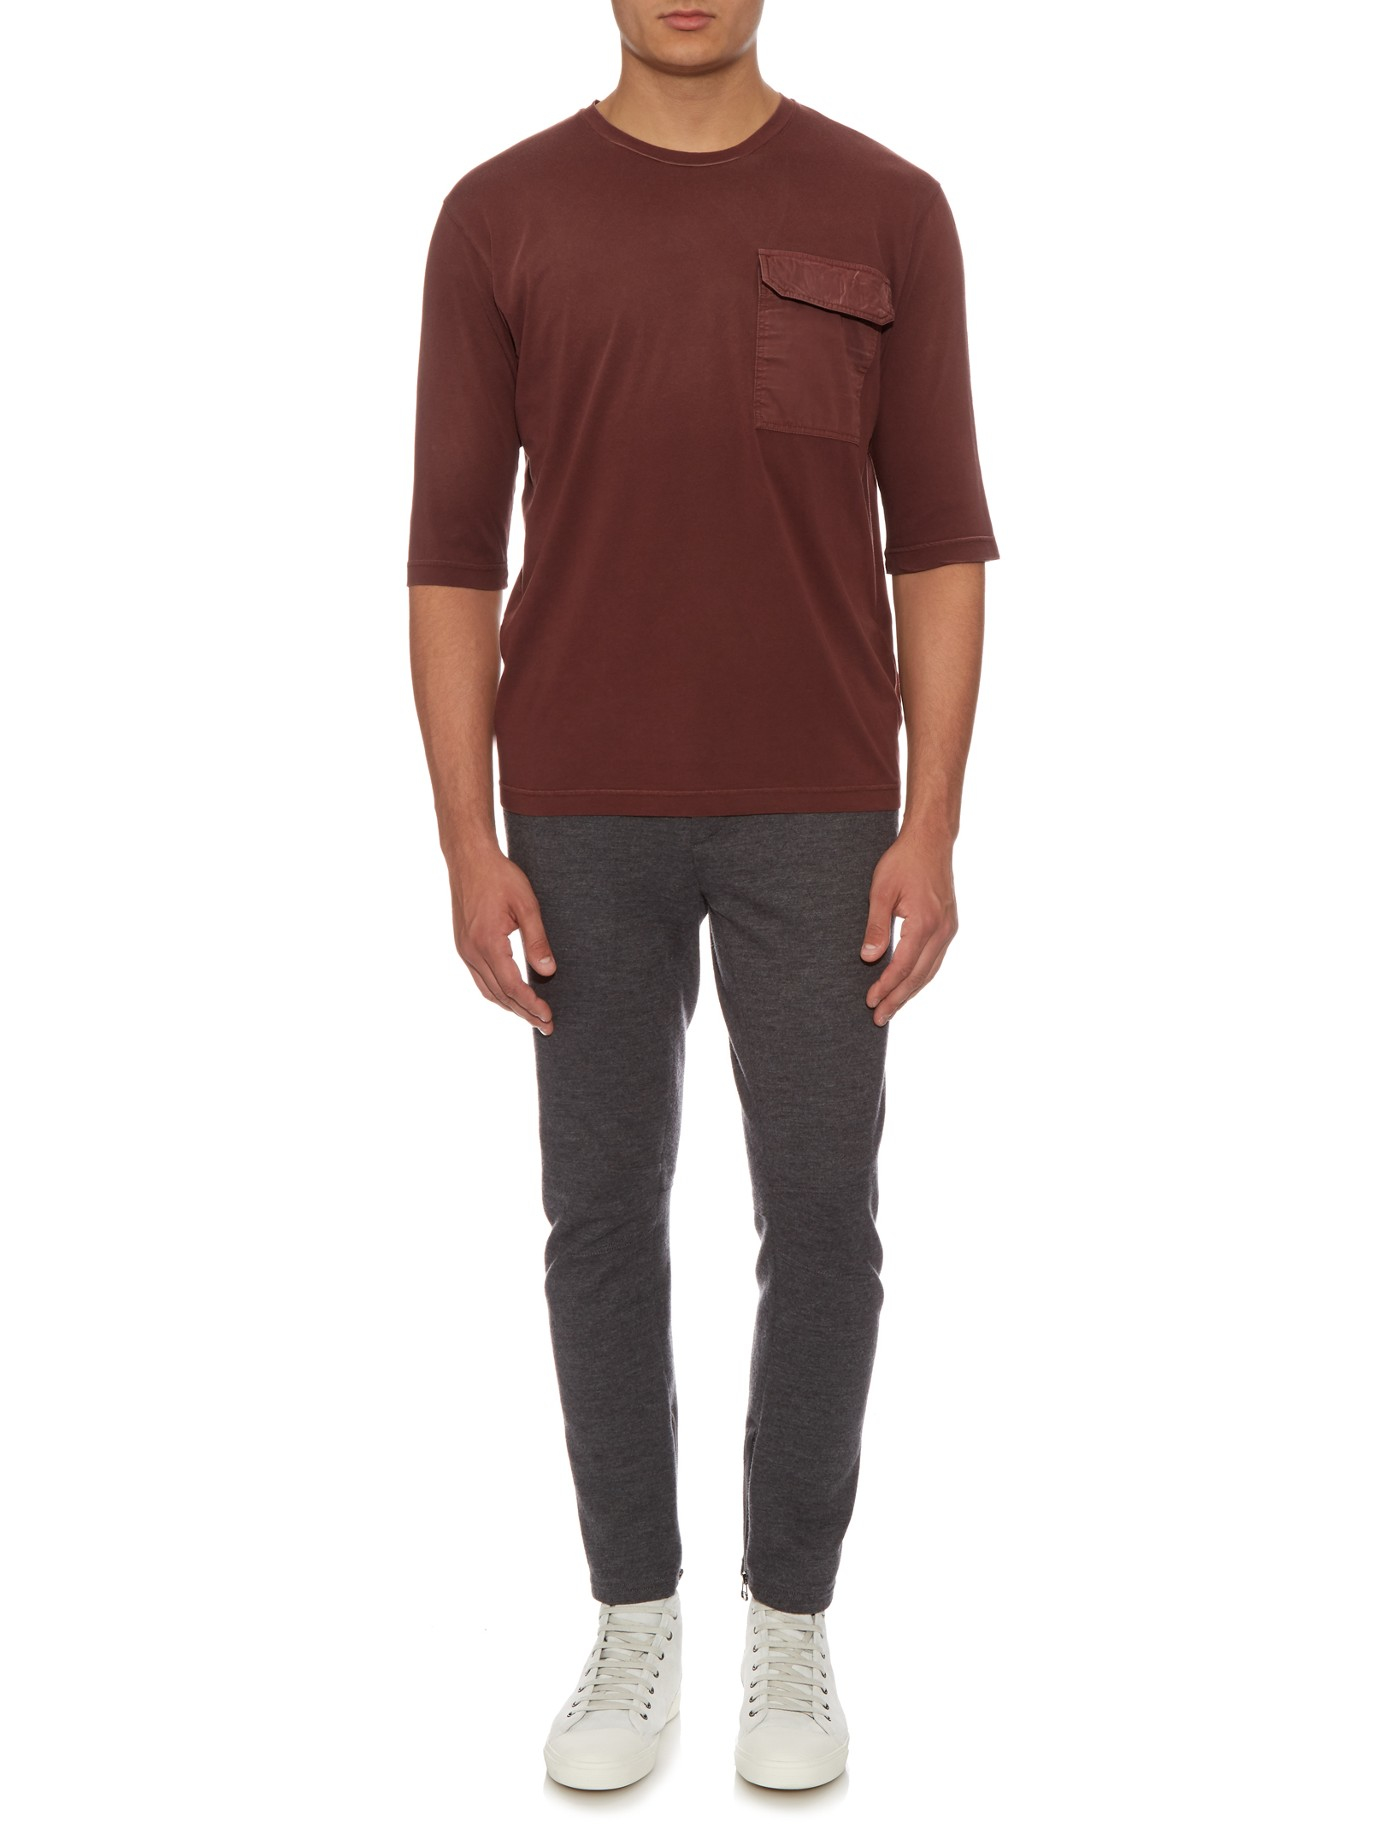 Bottega veneta patch pocket cotton t shirt in red for men for Bottega veneta t shirt